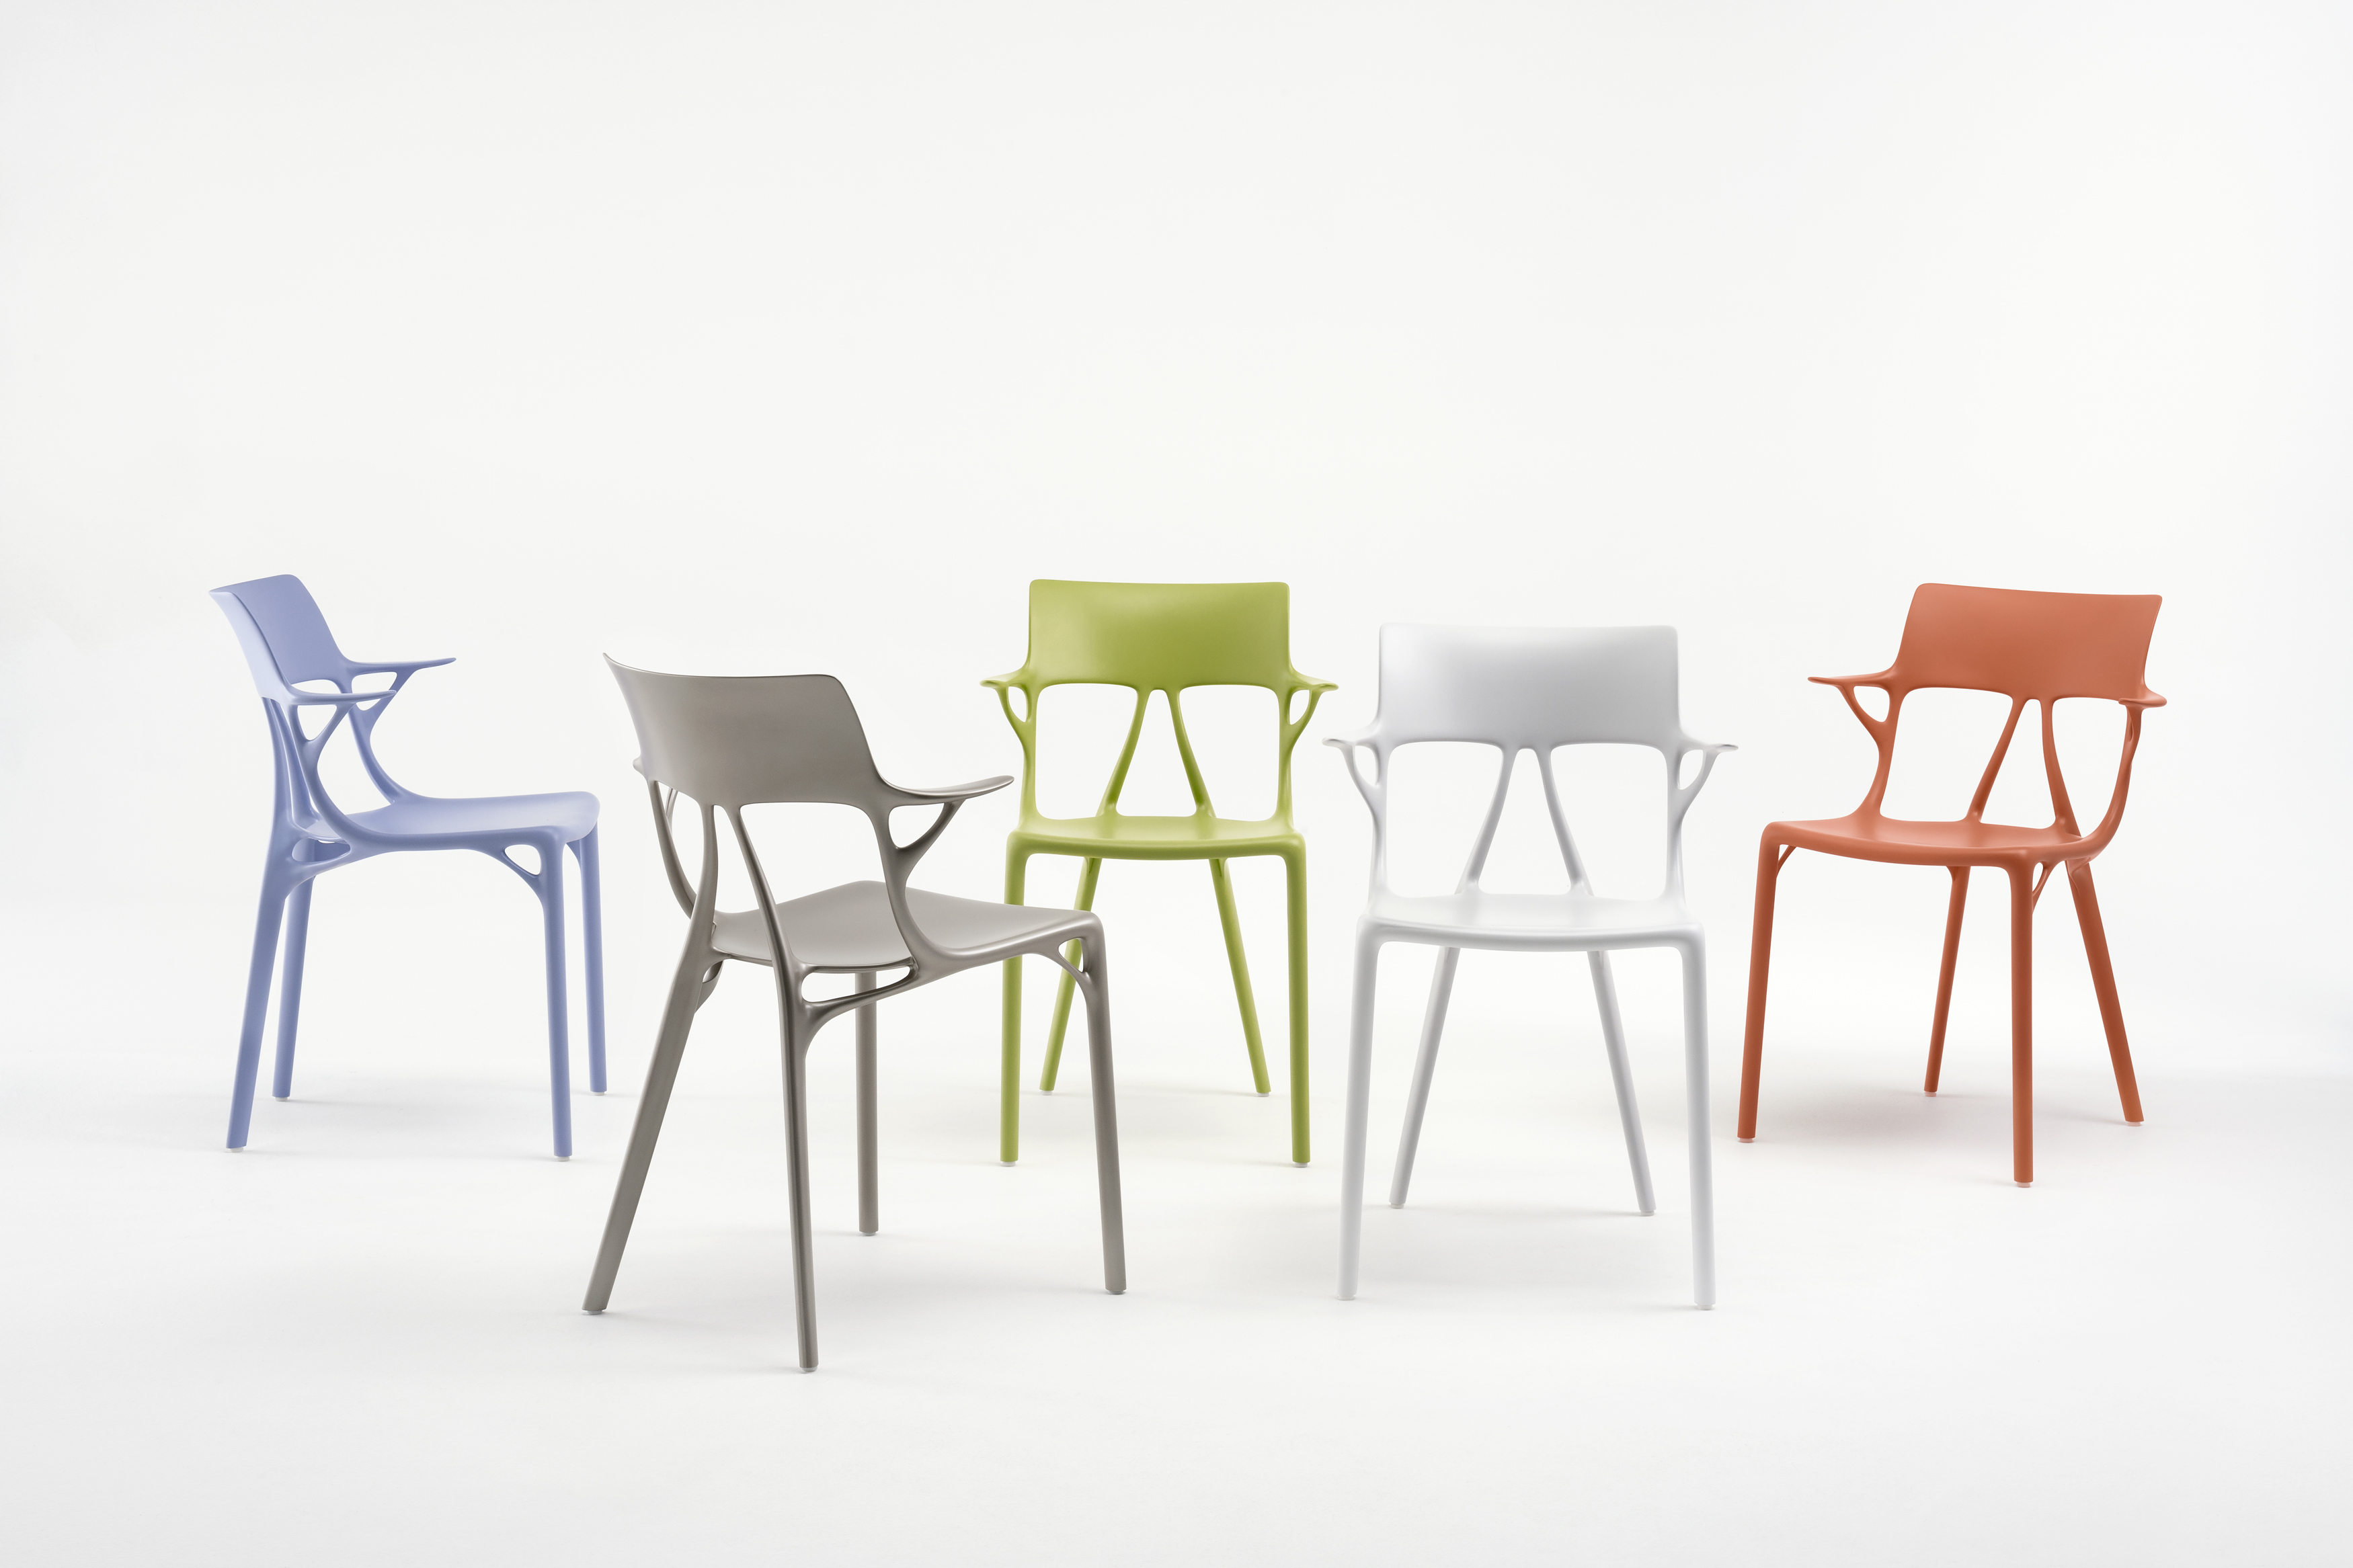 Philippe Starck's new Kartell chair was designed with help from AI